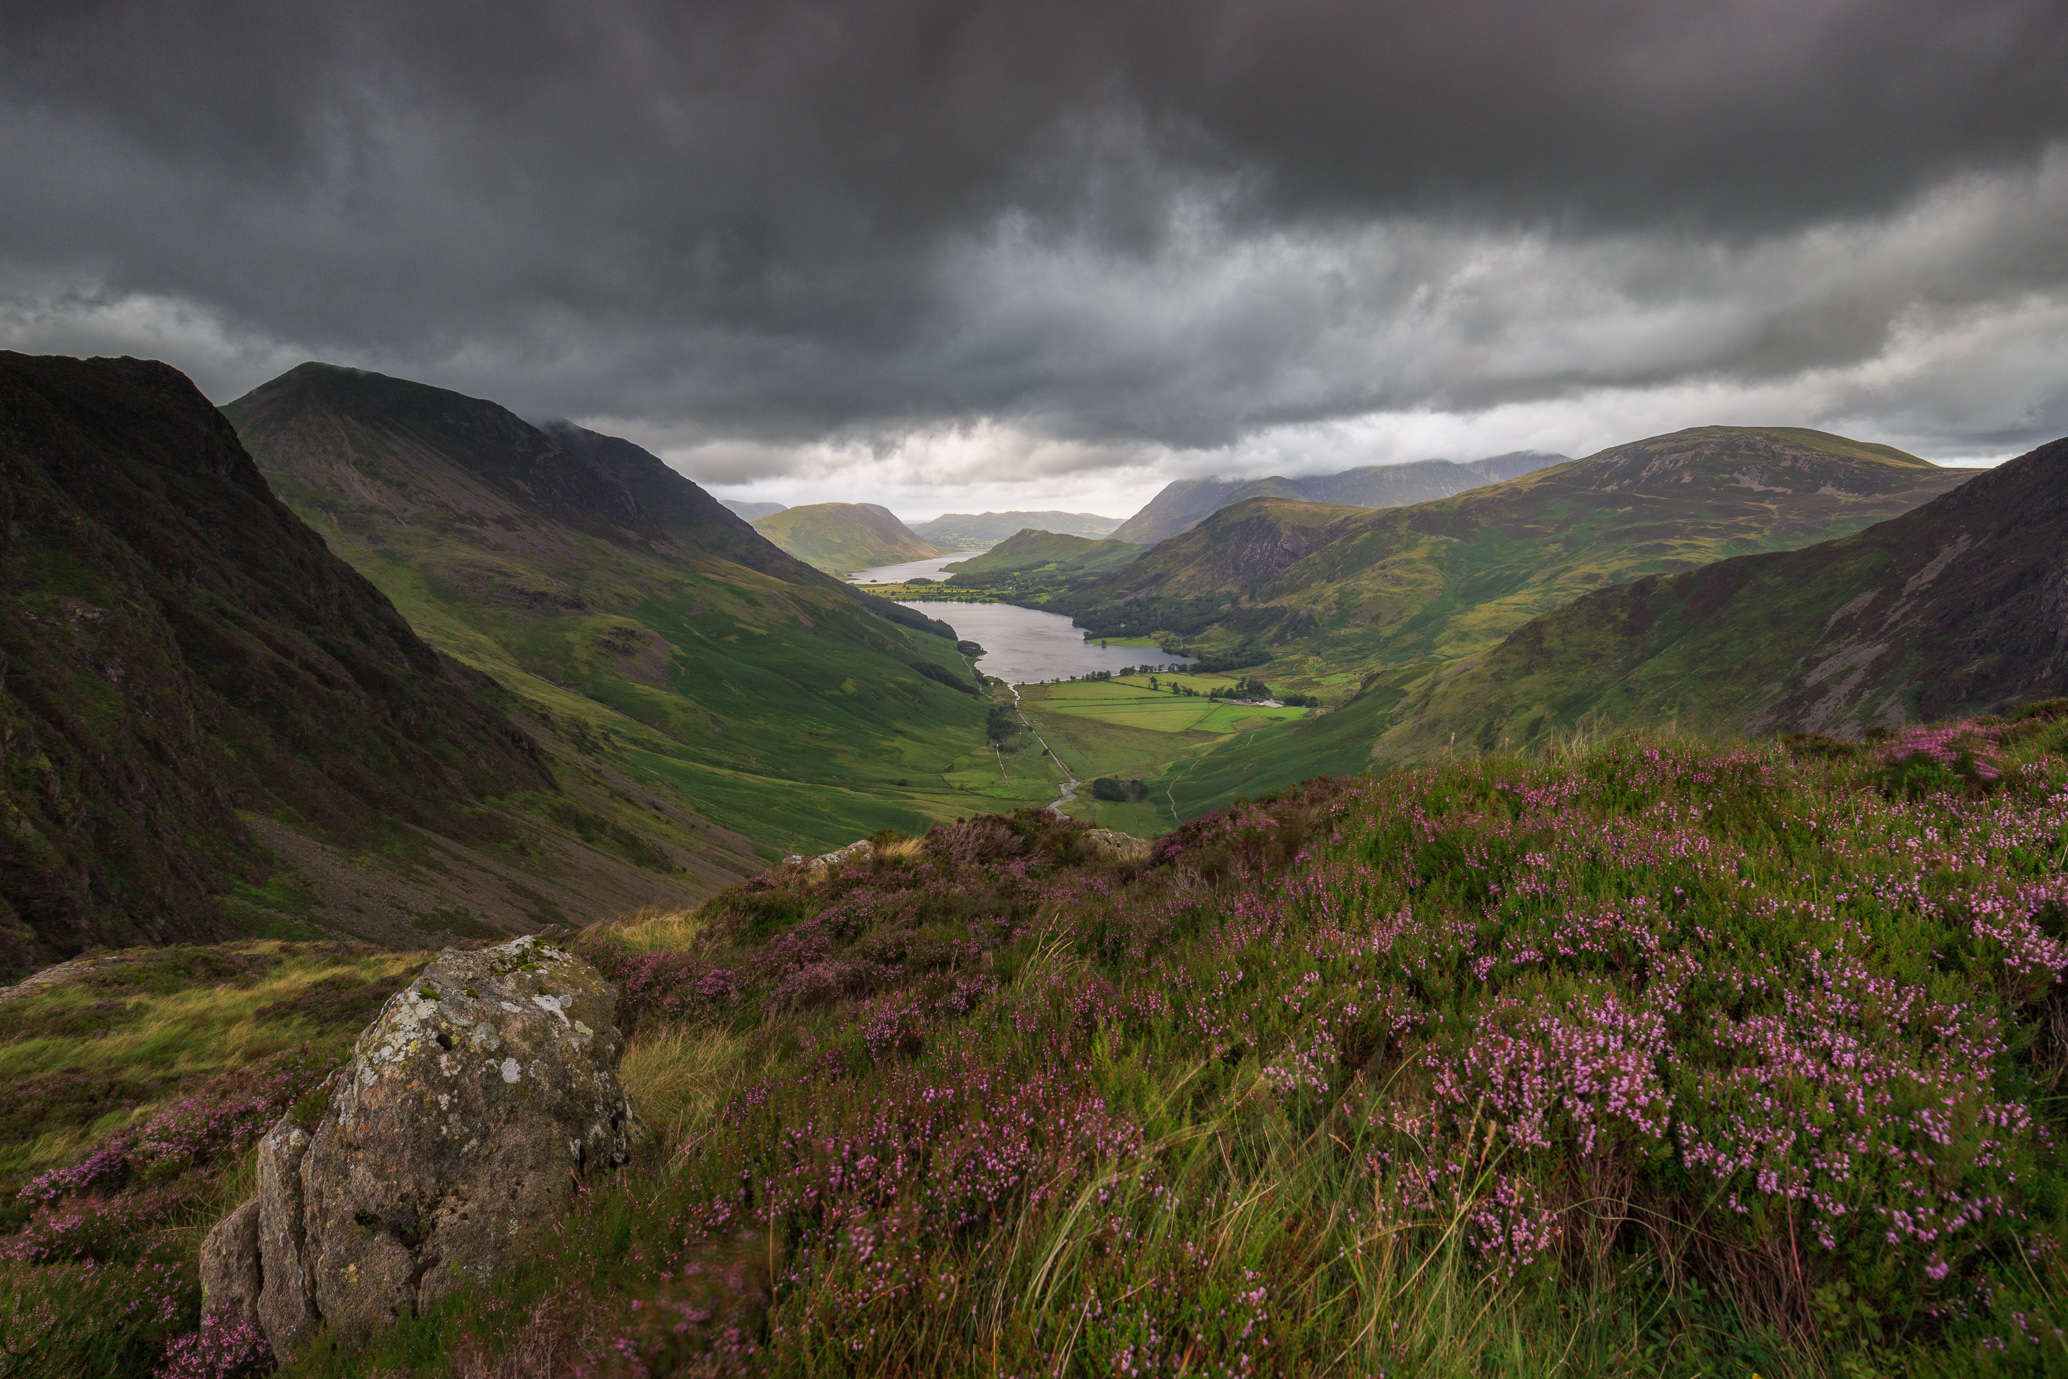 Buttermere From Up High